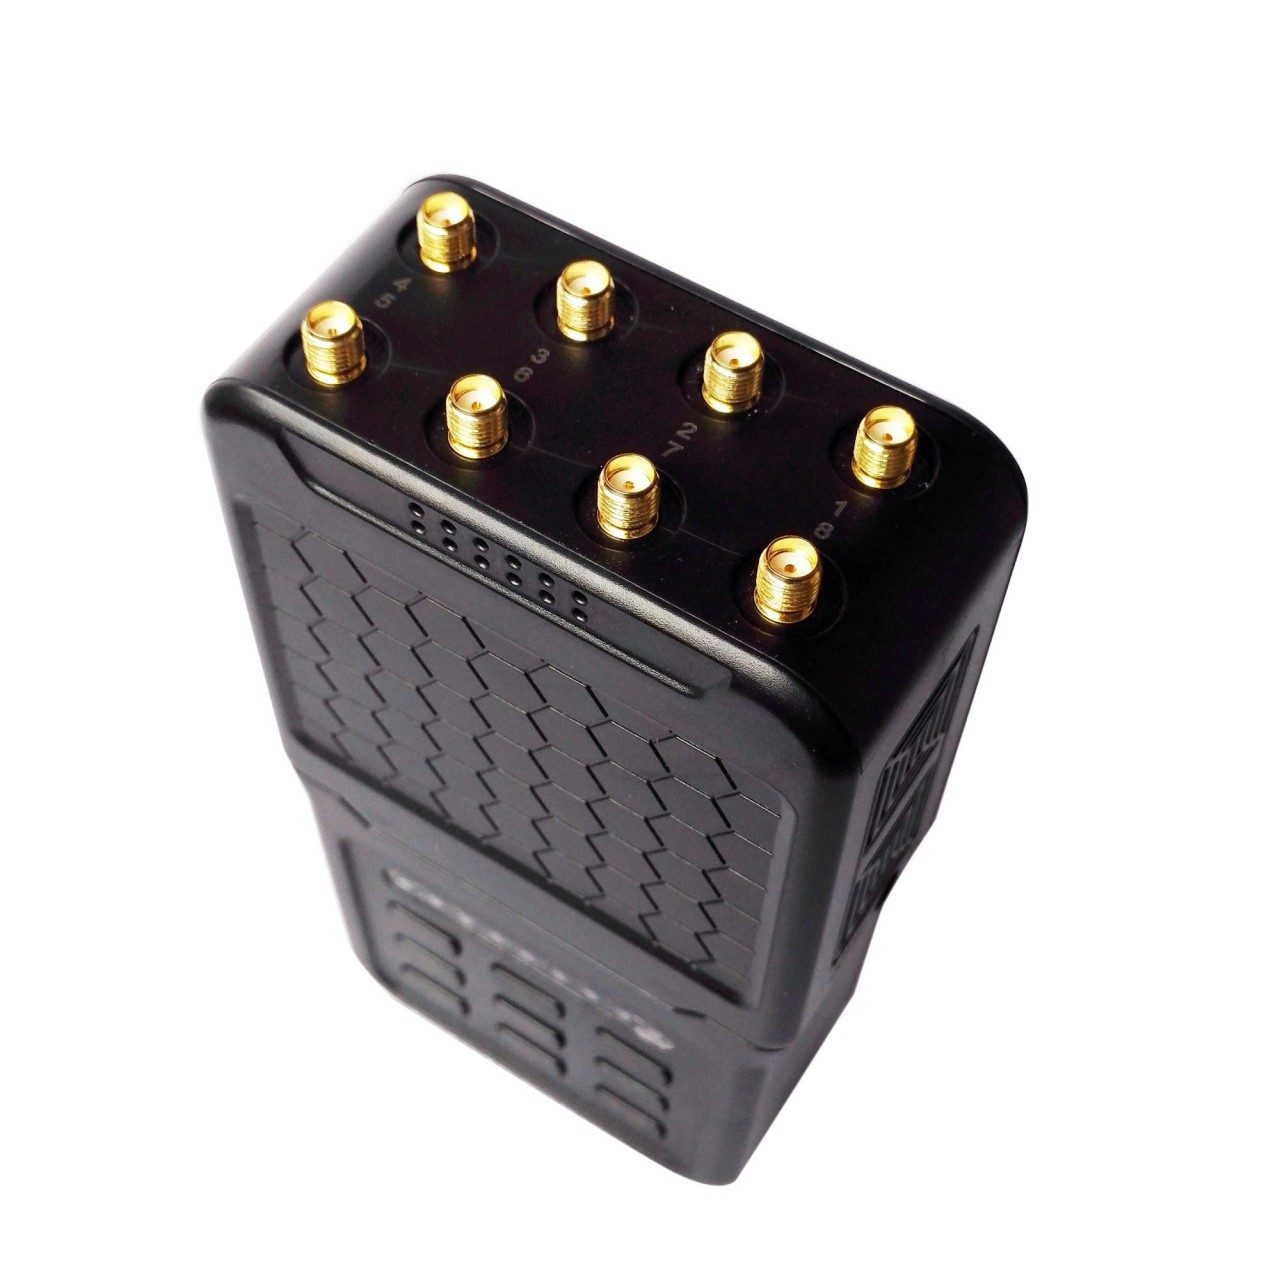 Cell phone signal jammers radio shack | 4W Powerful All WiFI Signals Jammer (2.4G,5.8G)